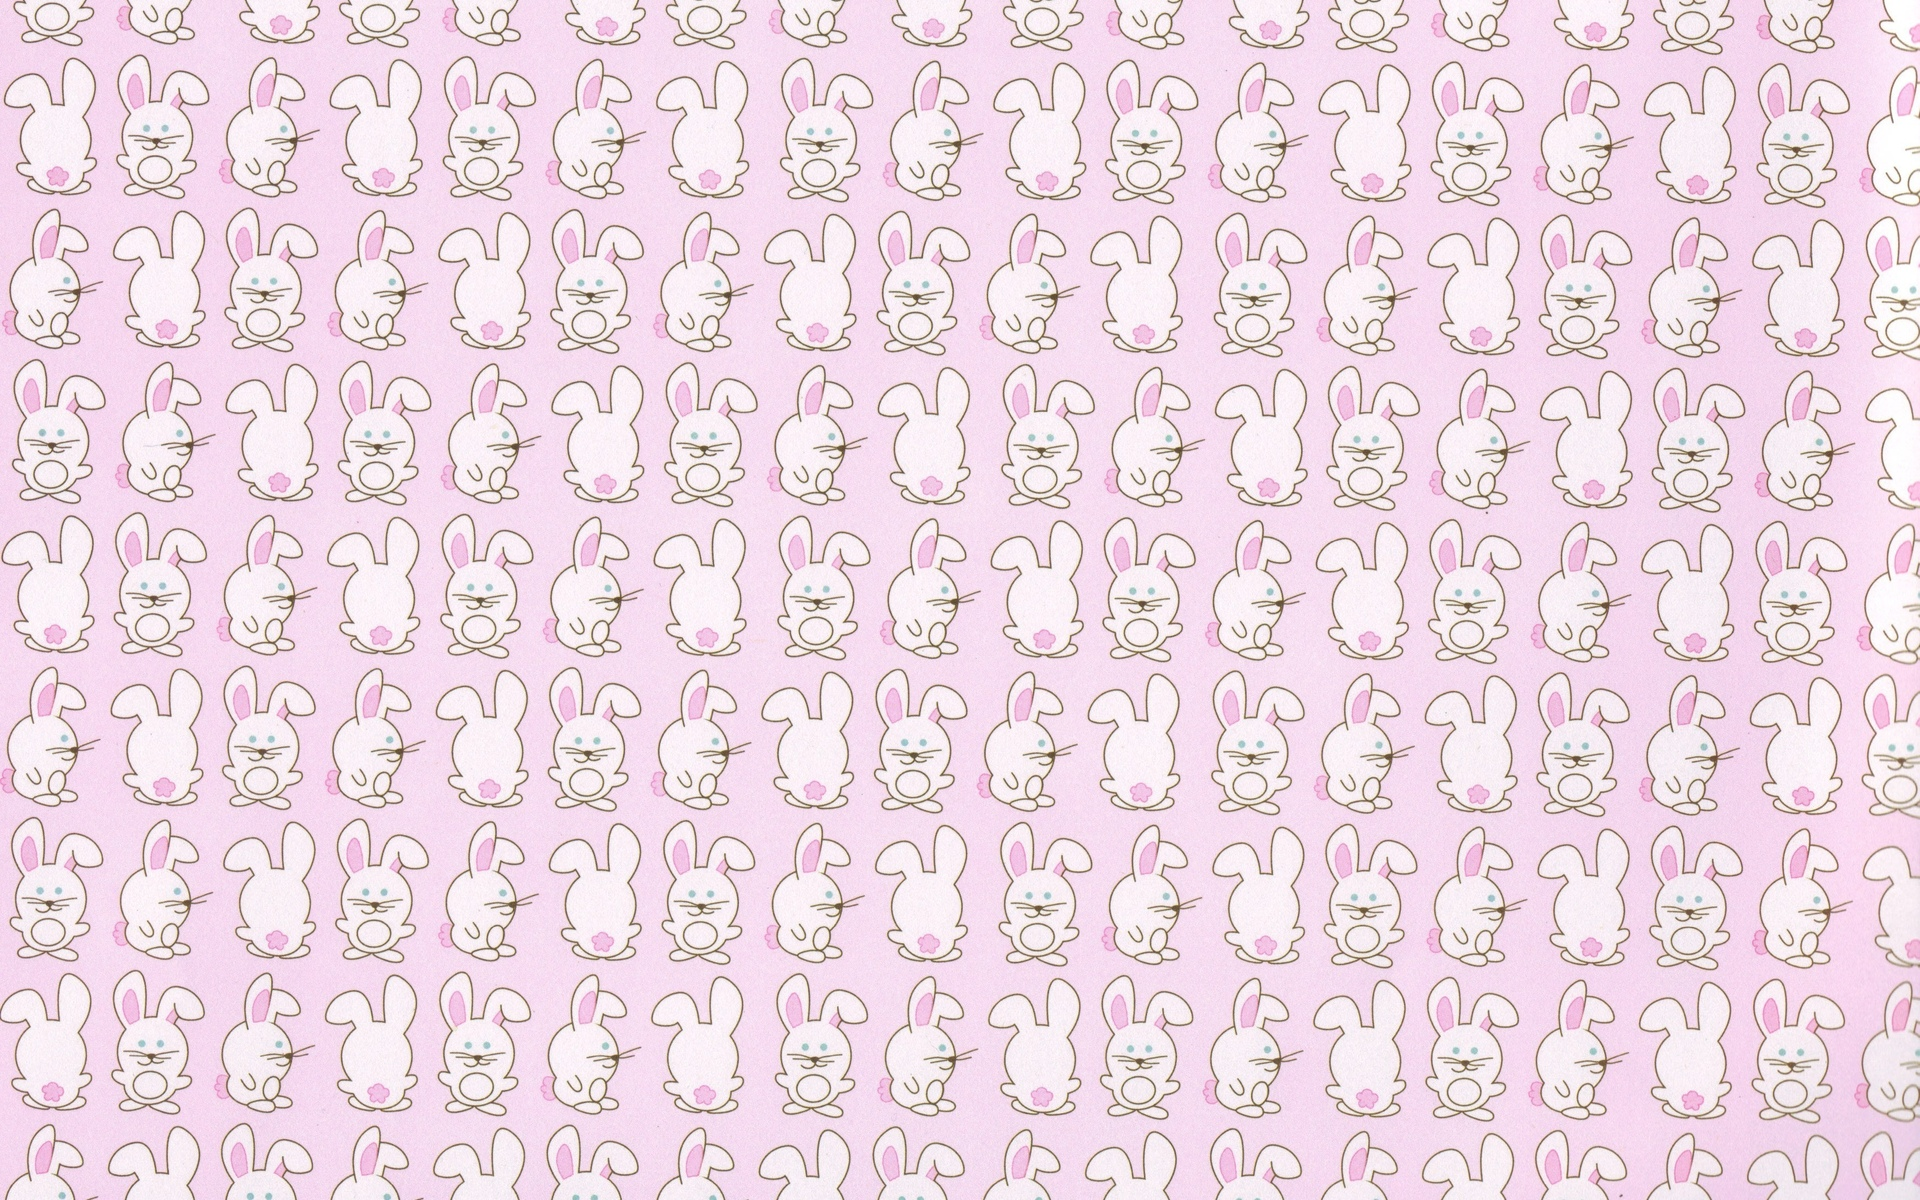 Free Download Bunny Pattern Rabbit Cute Children Wallpaper Background 1920x1200 For Your Desktop Mobile Tablet Explore 65 Cute Bunny Backgrounds Baby Bunny Wallpaper Free Bunny Wallpaper Cute Bunny Wallpaper